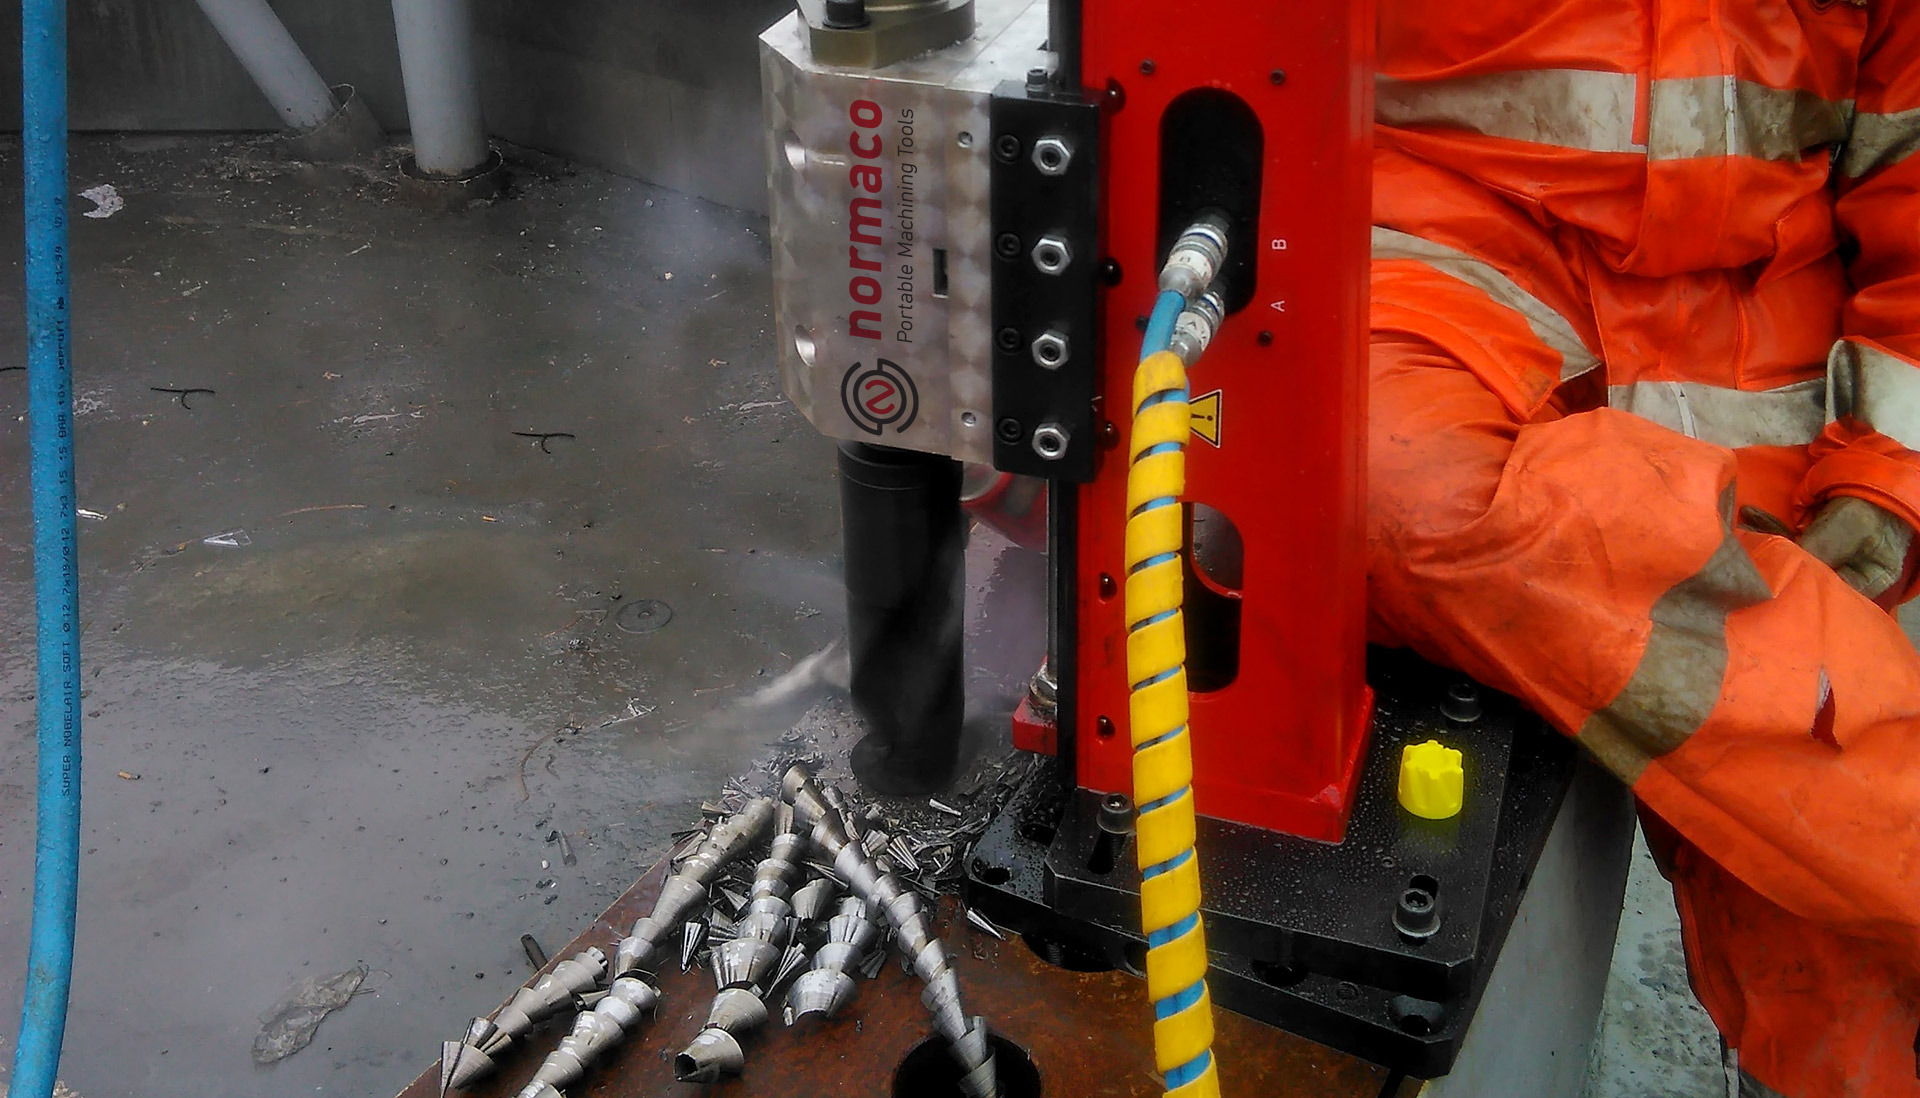 Normaco Portable drill used to drill wind turbine flange